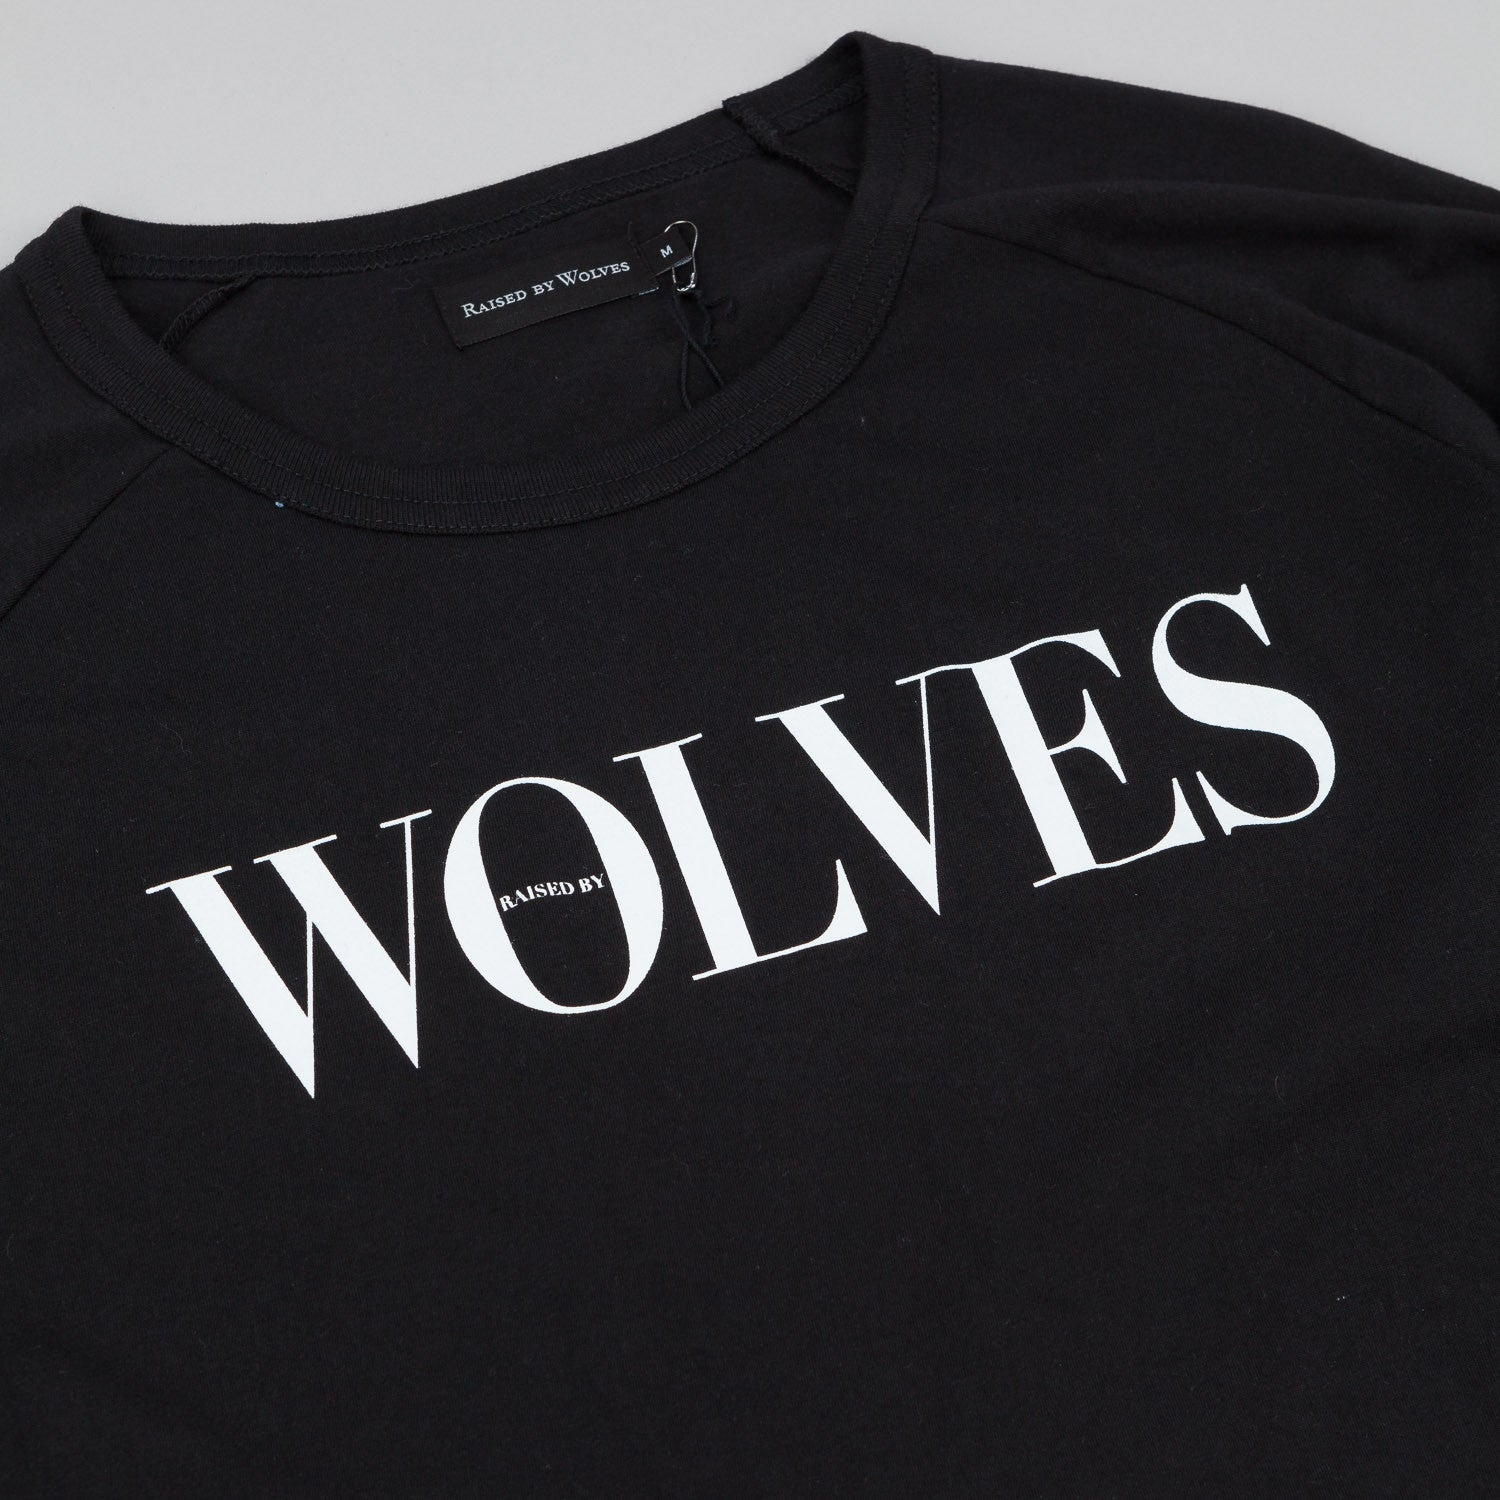 Raised By Wolves September Warm-Up 3/4 Sleeve Raglan T-Shirt - Black